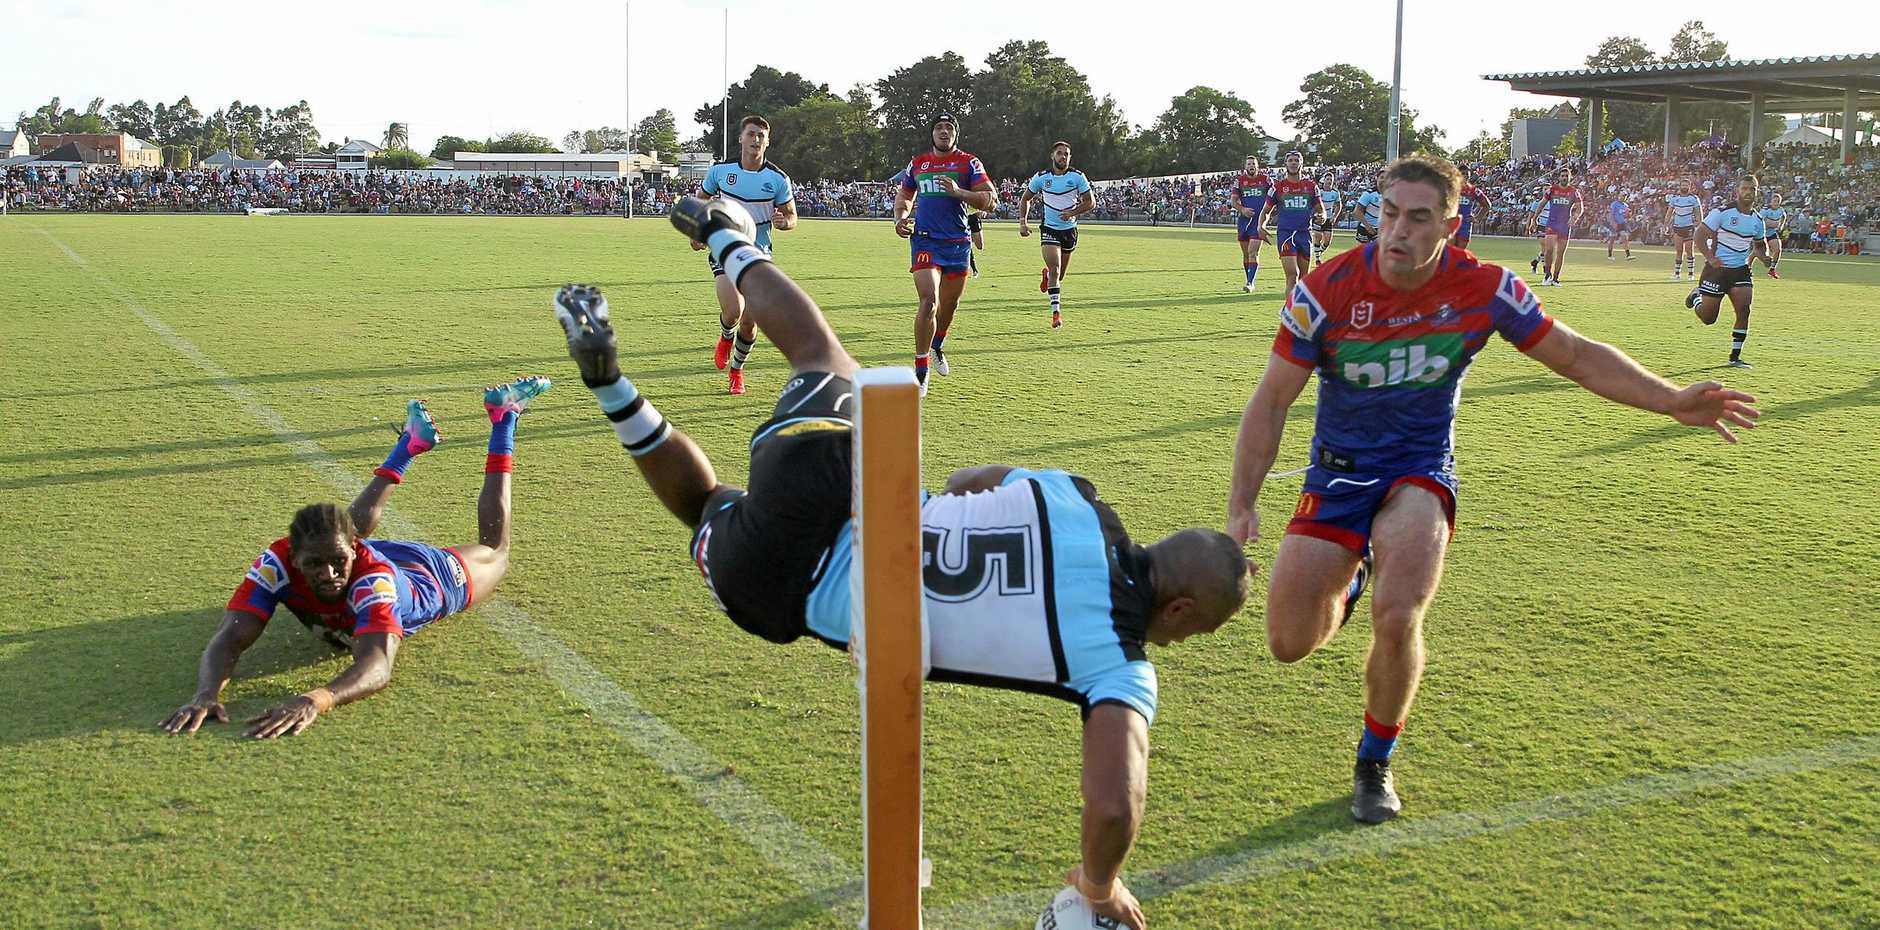 Cronulla's Sione Katoa scores a try during the Sharks' NRL trial match against the Newcastle Knights in Newcastle on Saturday. Picture: Tony Feder/Getty Images